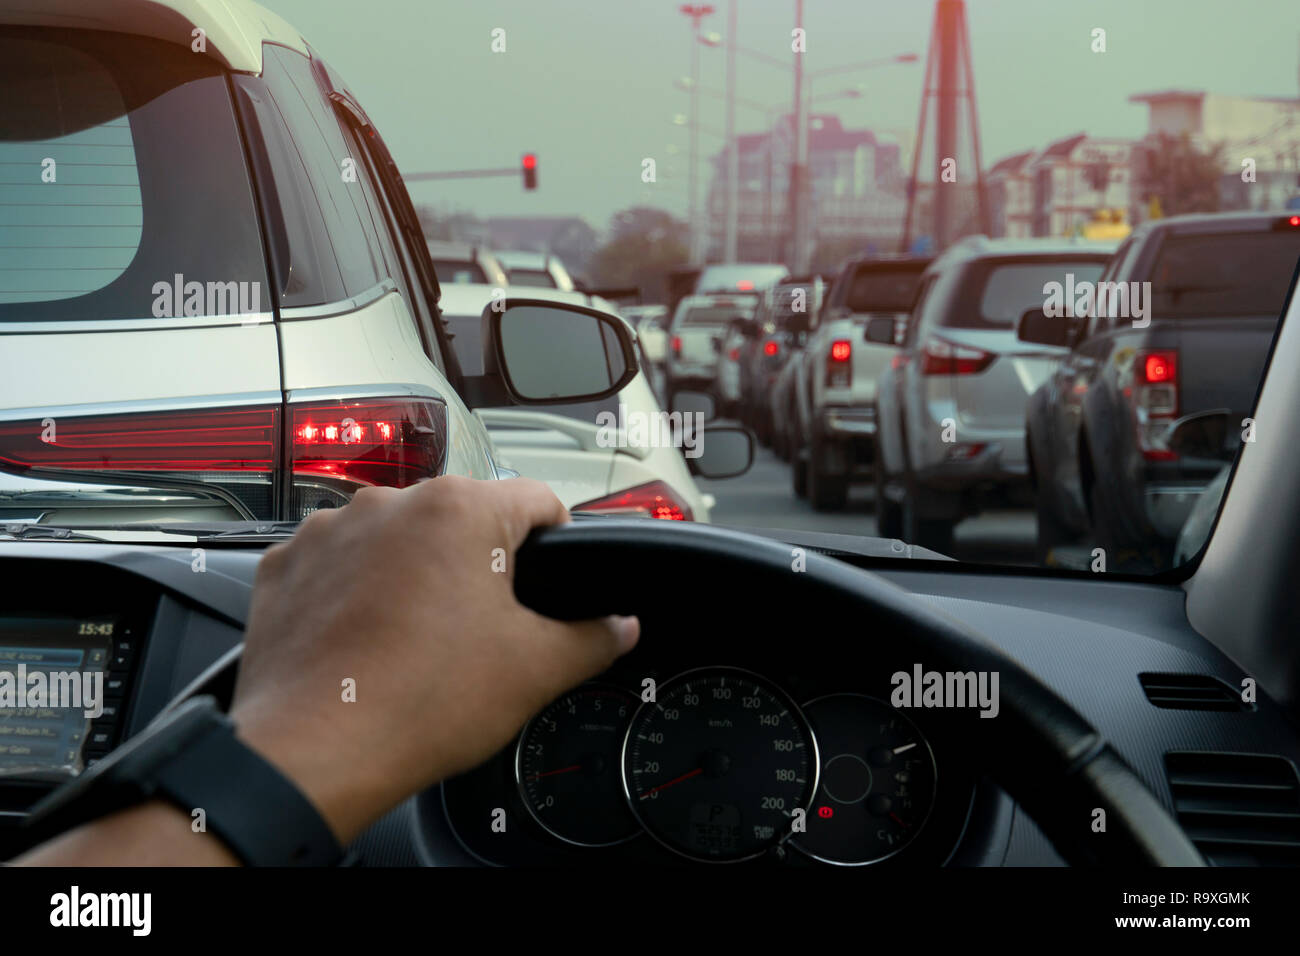 People Driving Inside Car And Many Cars On The Road Jam In Traffic Junction By Red Light Control Rush Hour In Thailand On Day Stock Photo Alamy